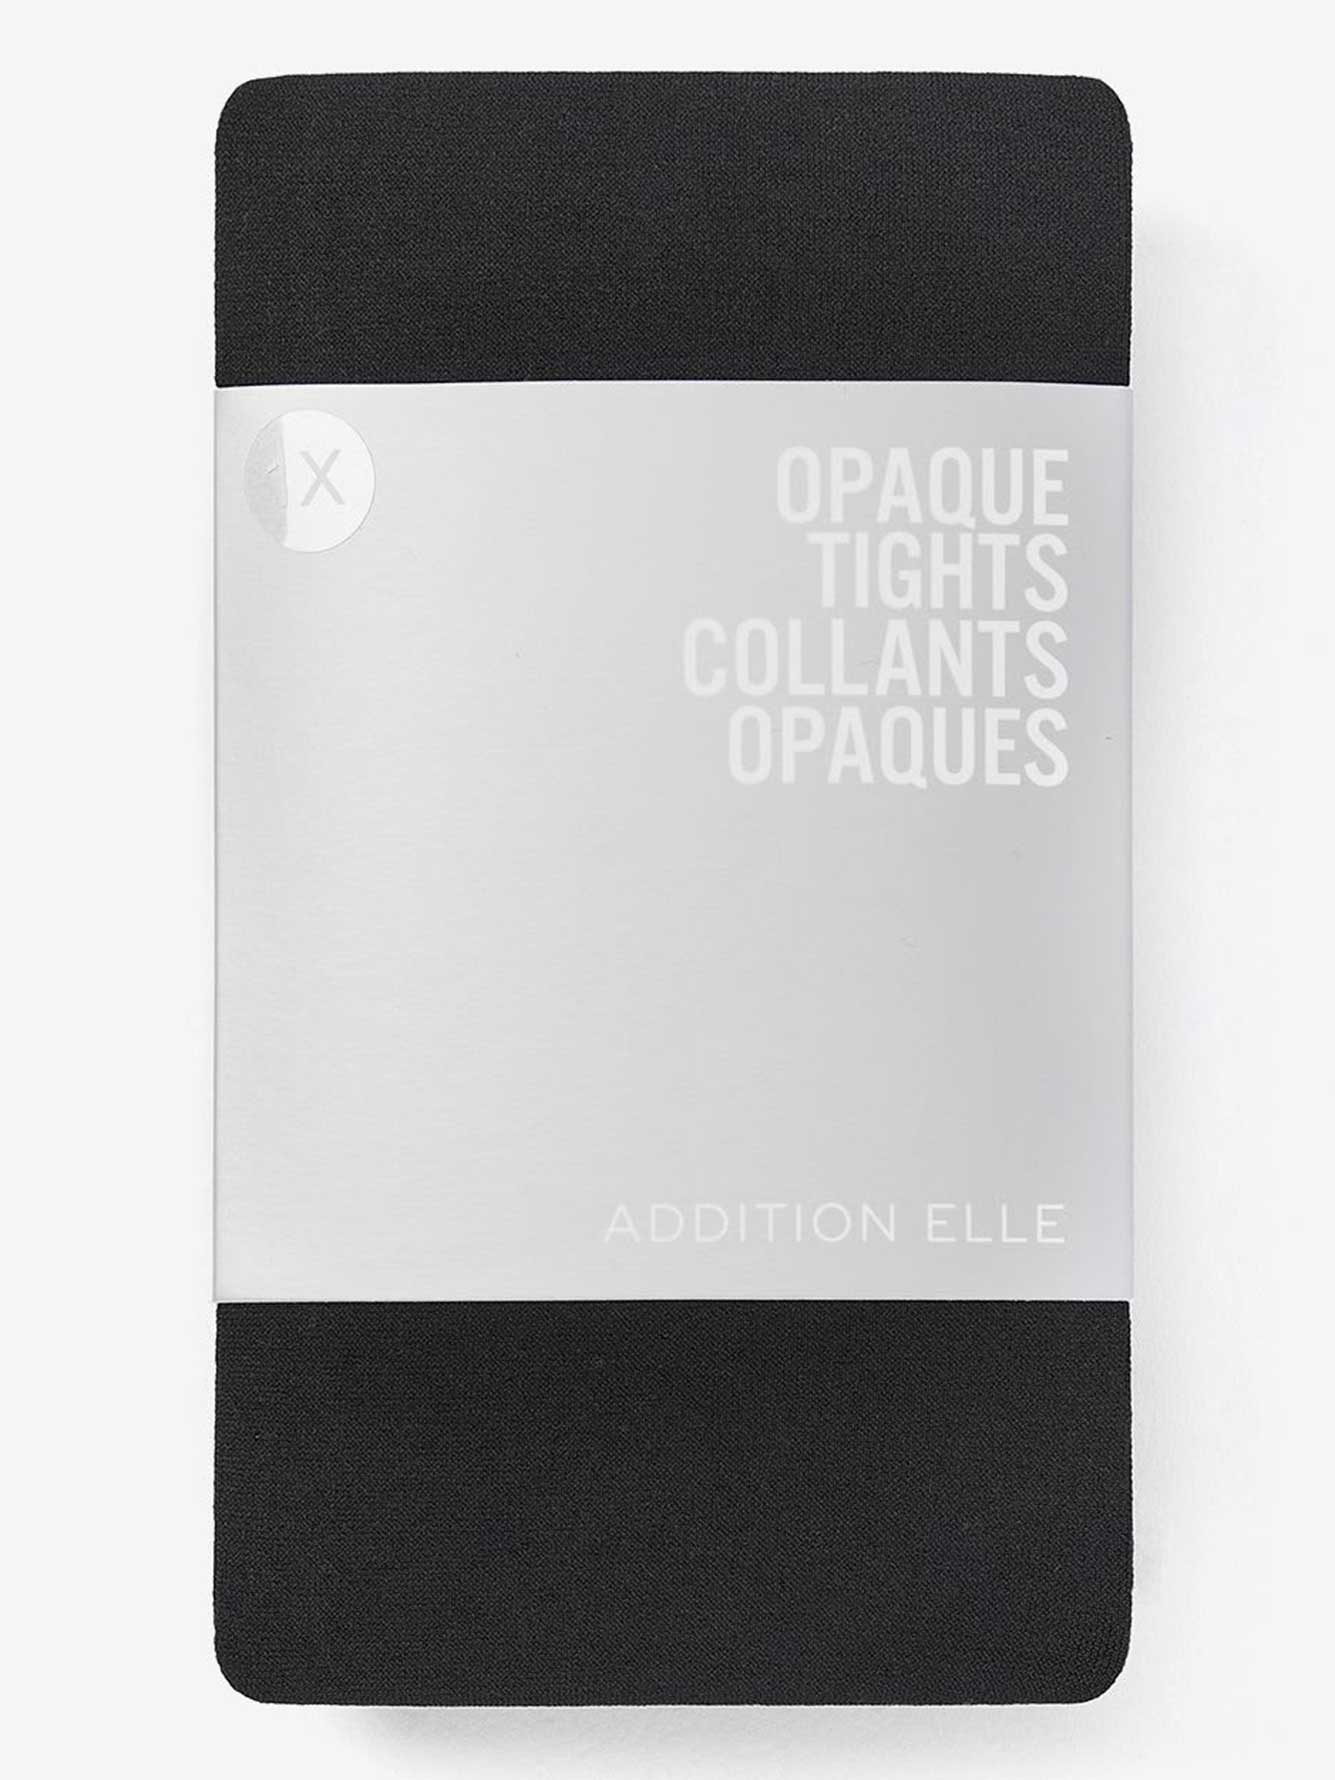 Heavyweight Opaque Tights